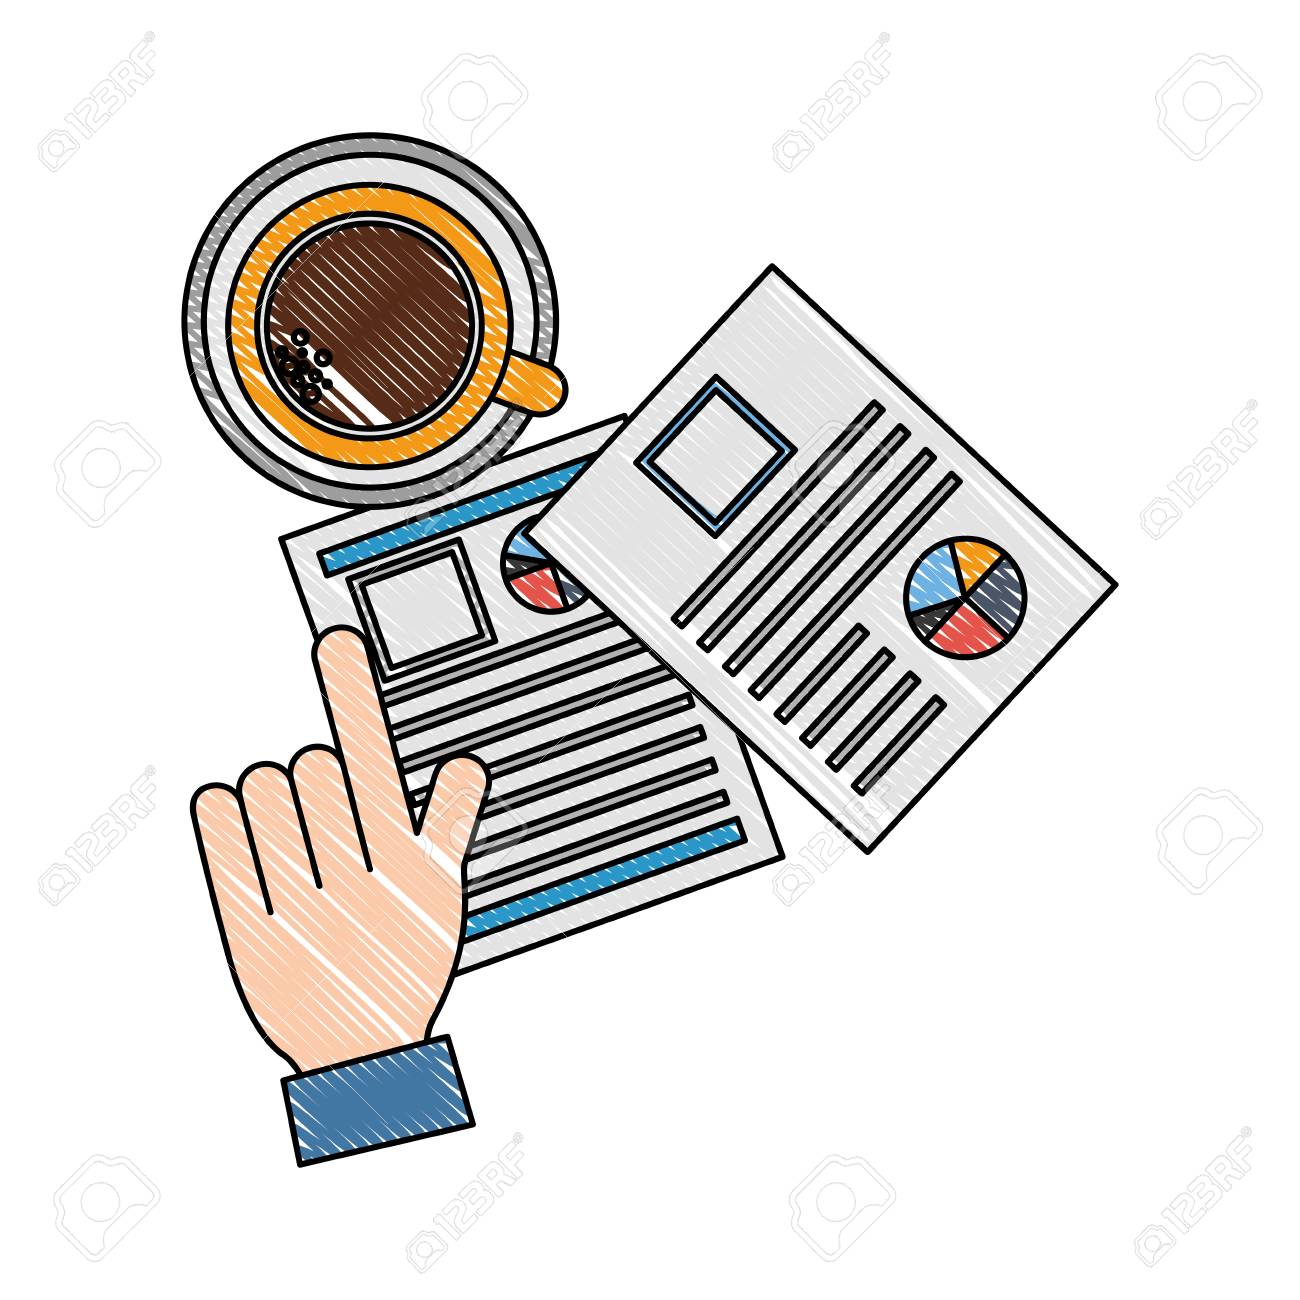 hand hiring resume documents coffee cup vector illustration - 109952649